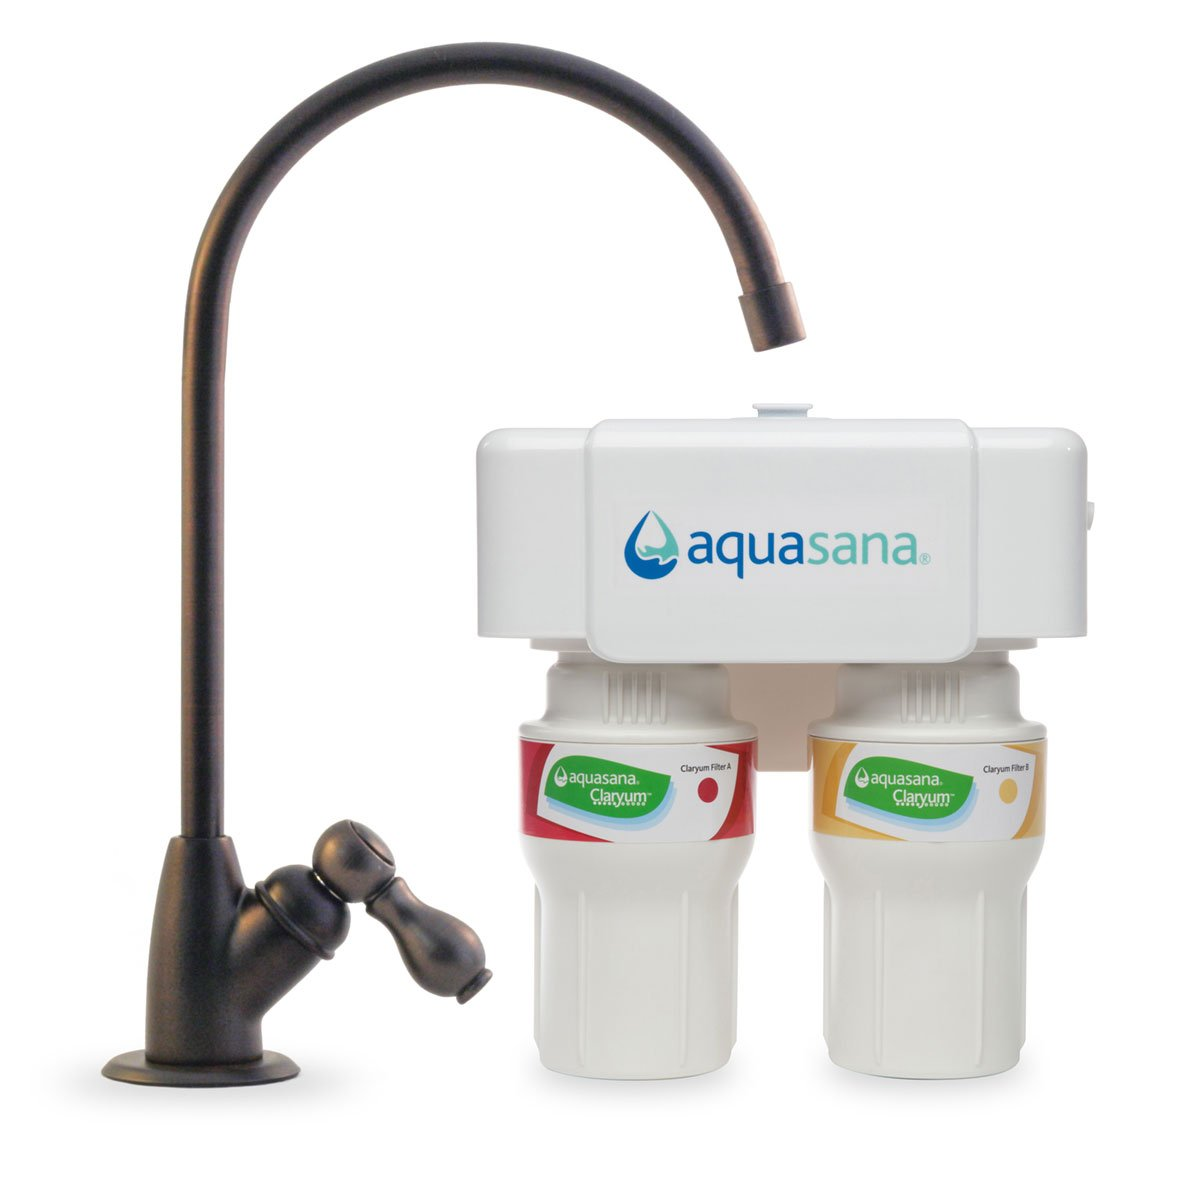 Aquasana 2-Stage Under Sink Water Filter System with Oil-Rubbed Bronze Faucet by Aquasana